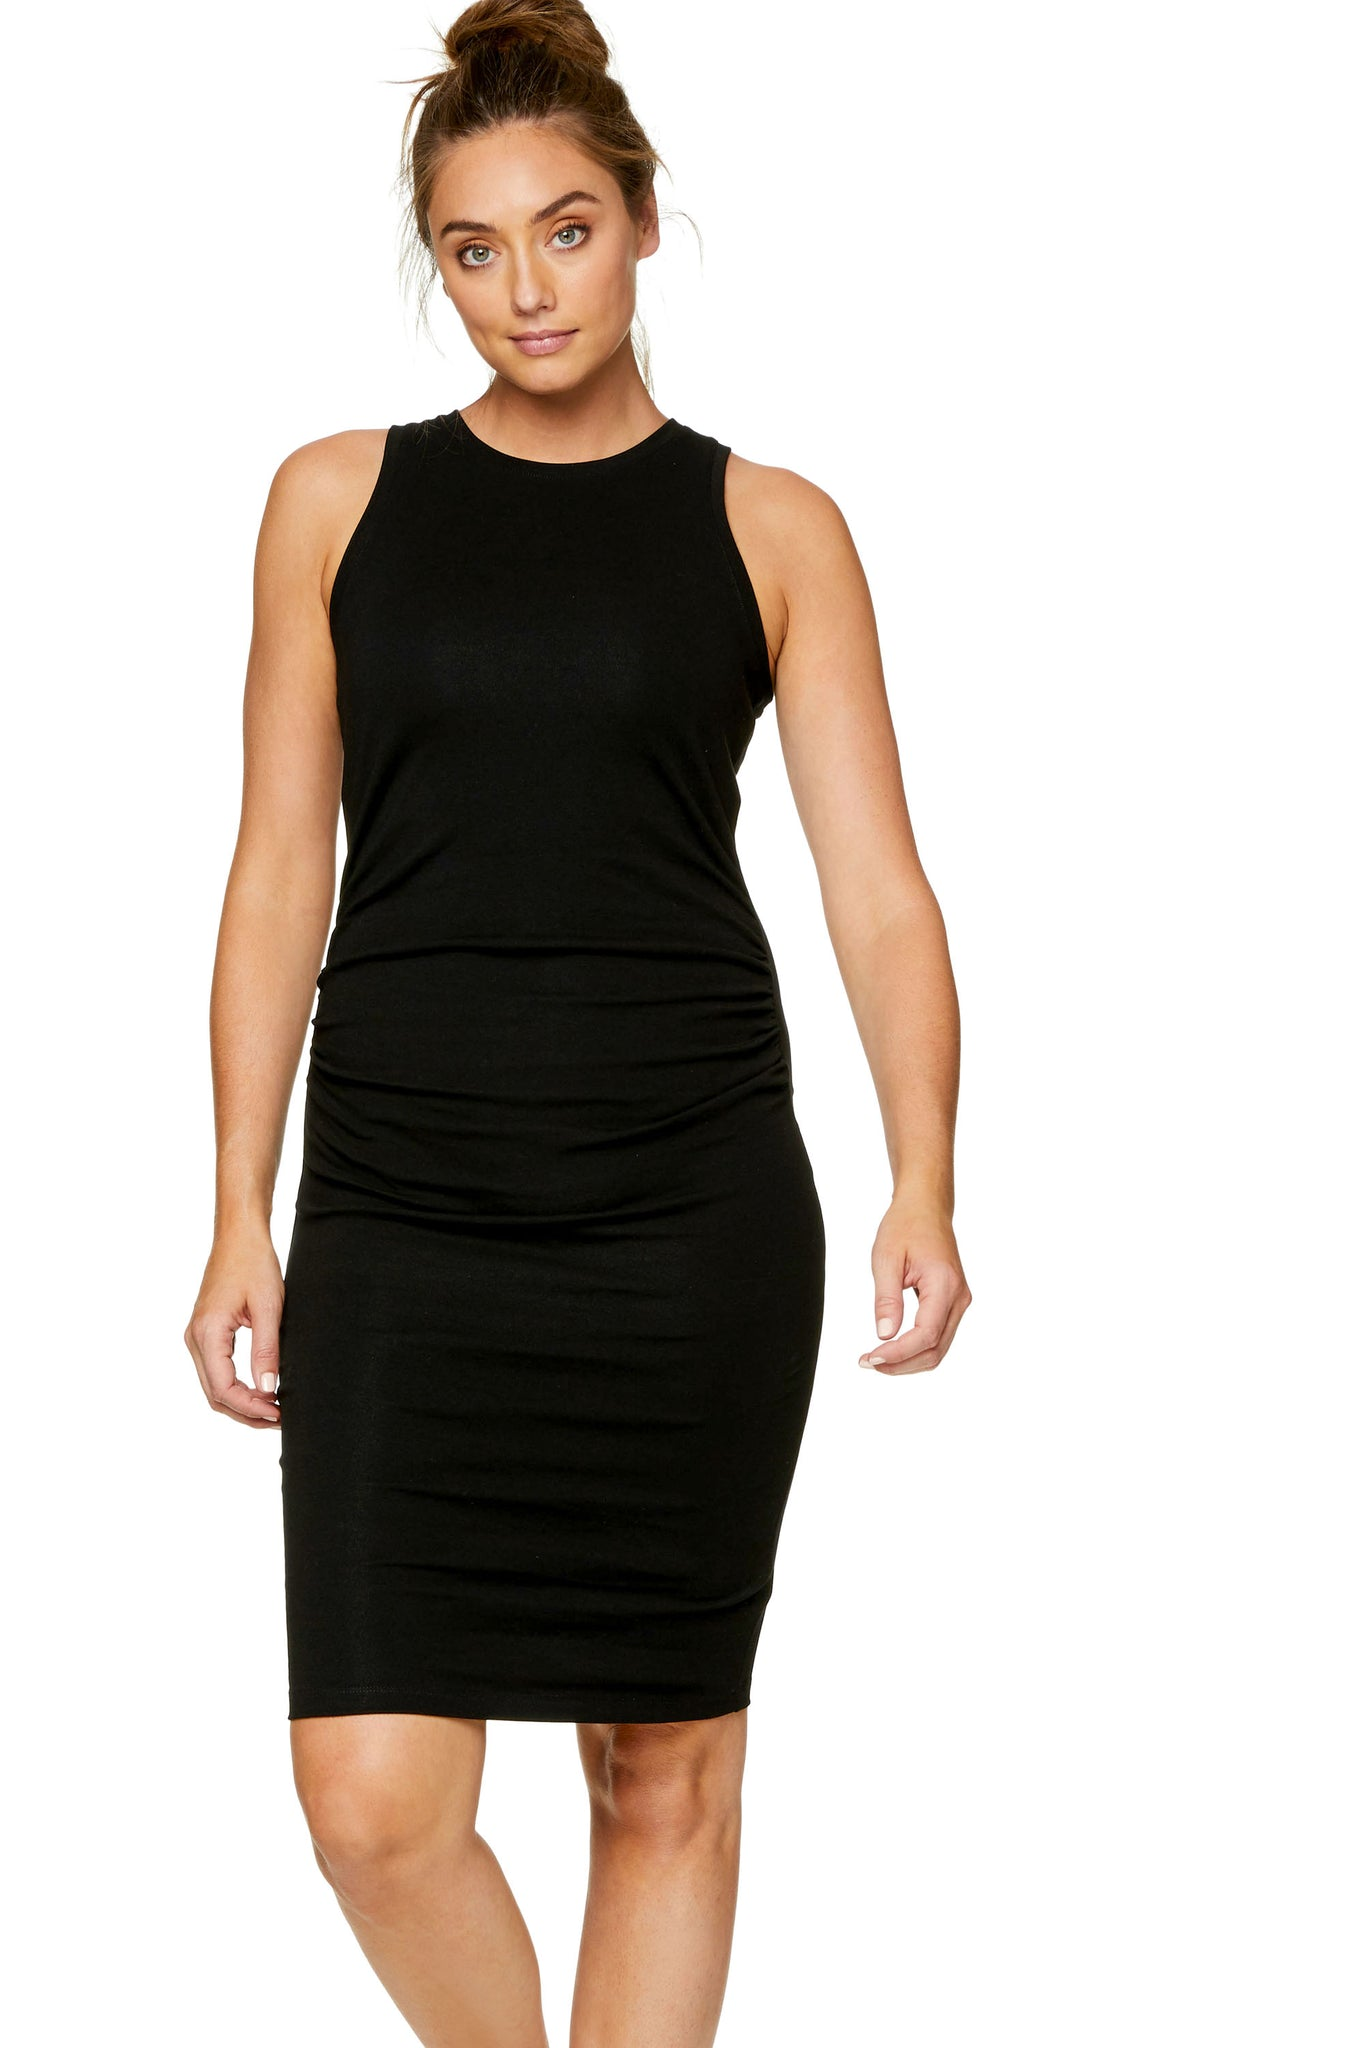 Bodycon maternity dress - black 5